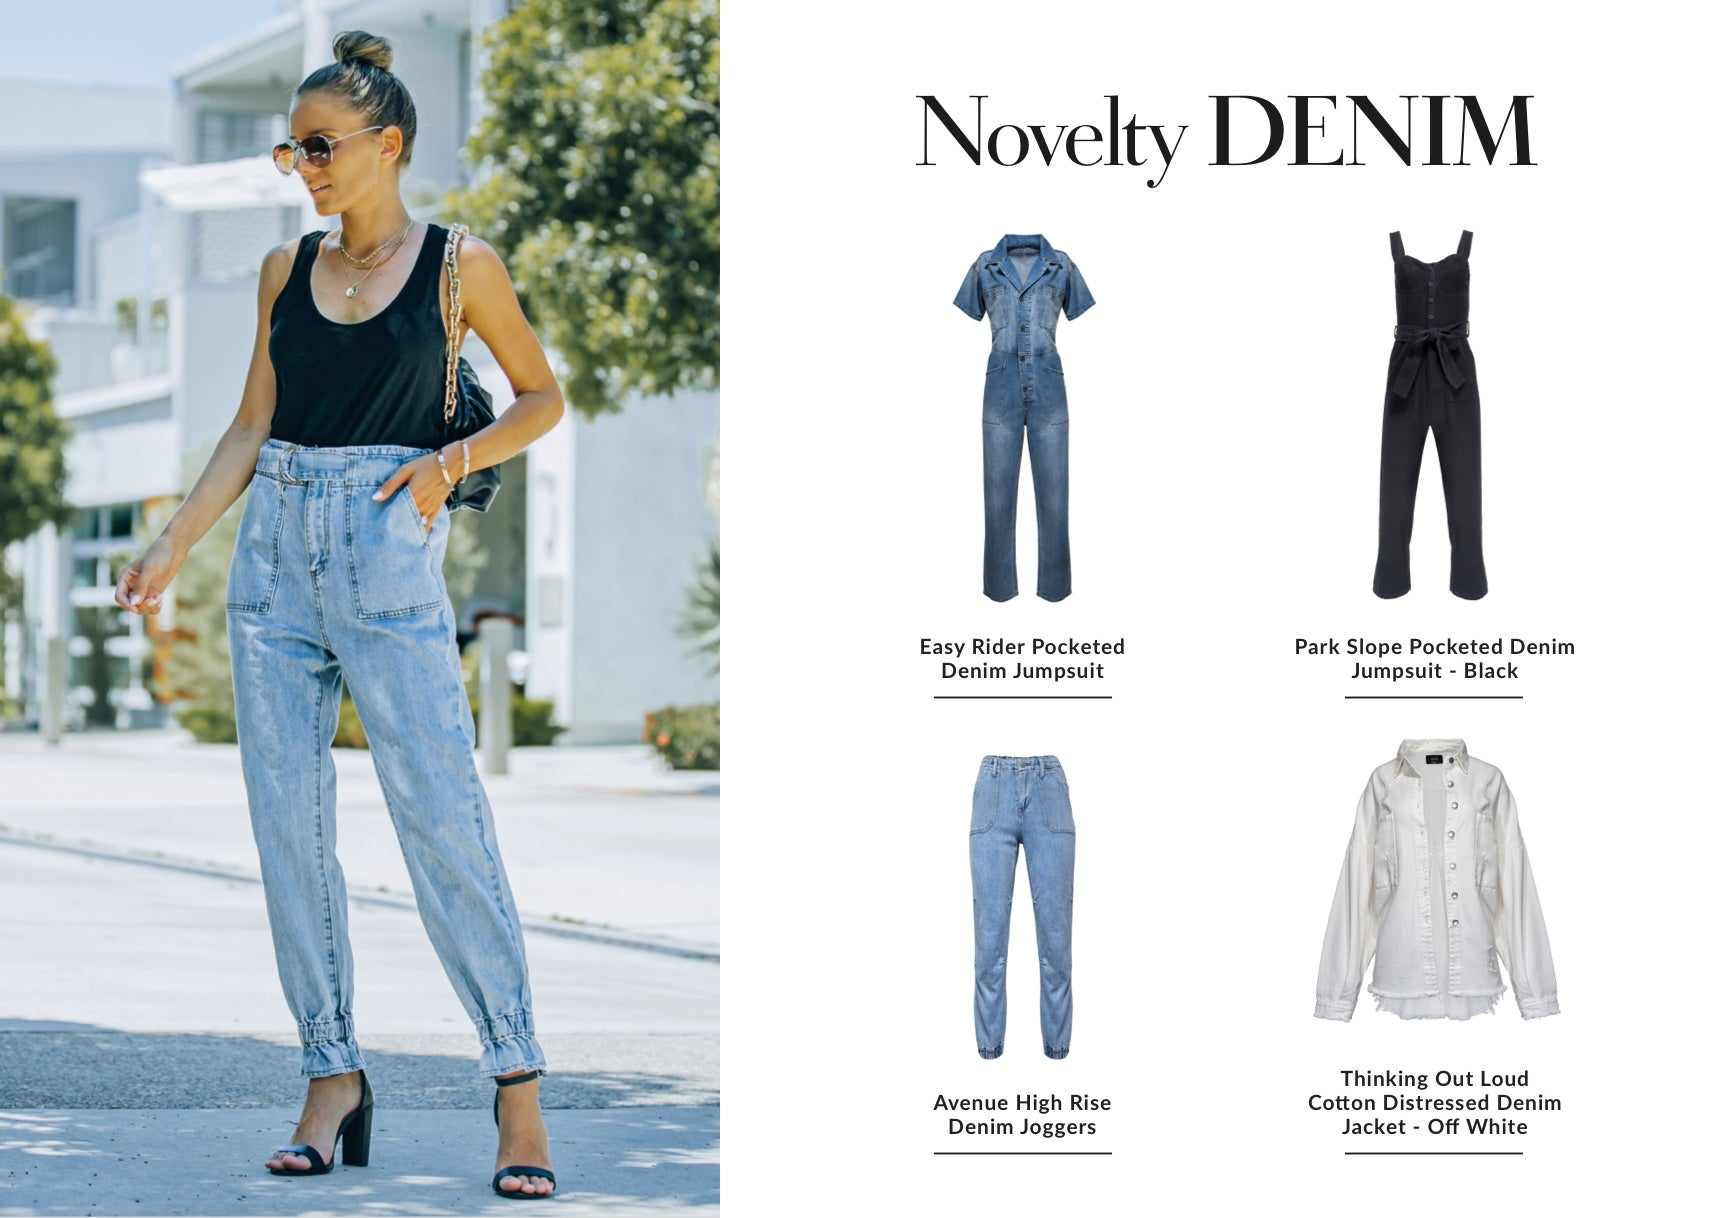 Gone are the days of super tight skinny jeans! This season is all about relaxed denim jumpsuits, joggers, and refreshing colors. These anything but basic styles are cute for concerts, work events, date nights, and everything in between. All of the above can be easily dressed up with a heel or down with a bootie. Shop Novelty Denim